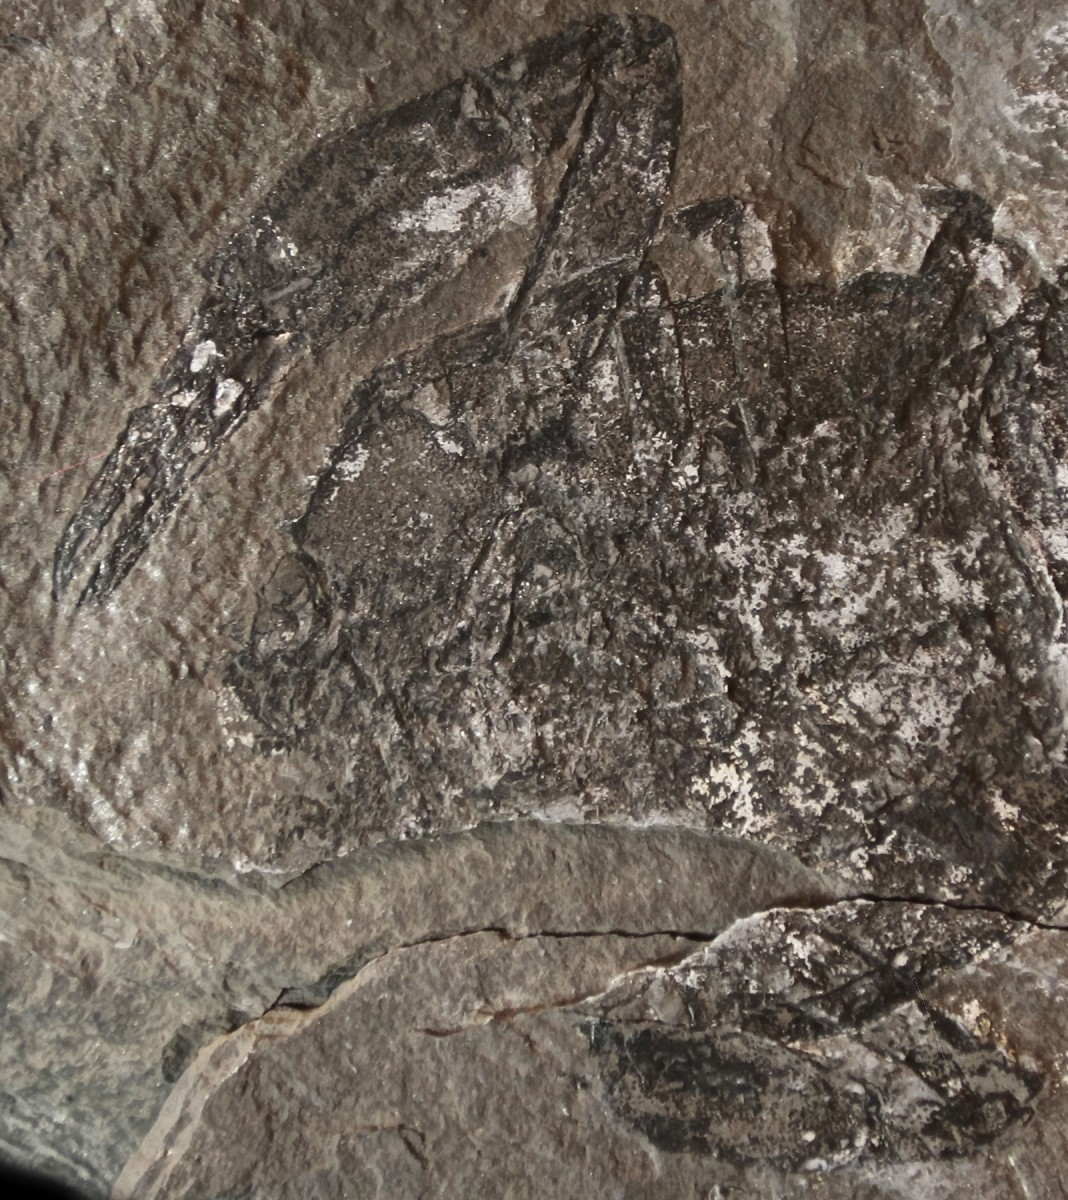 A lobster, the first fossil found by the team at Ya Ha Tinda Ranch in Alberta, Canada. Credit image: Rowan Martindale/The University of Texas at Austin Jackson School of Geosciences